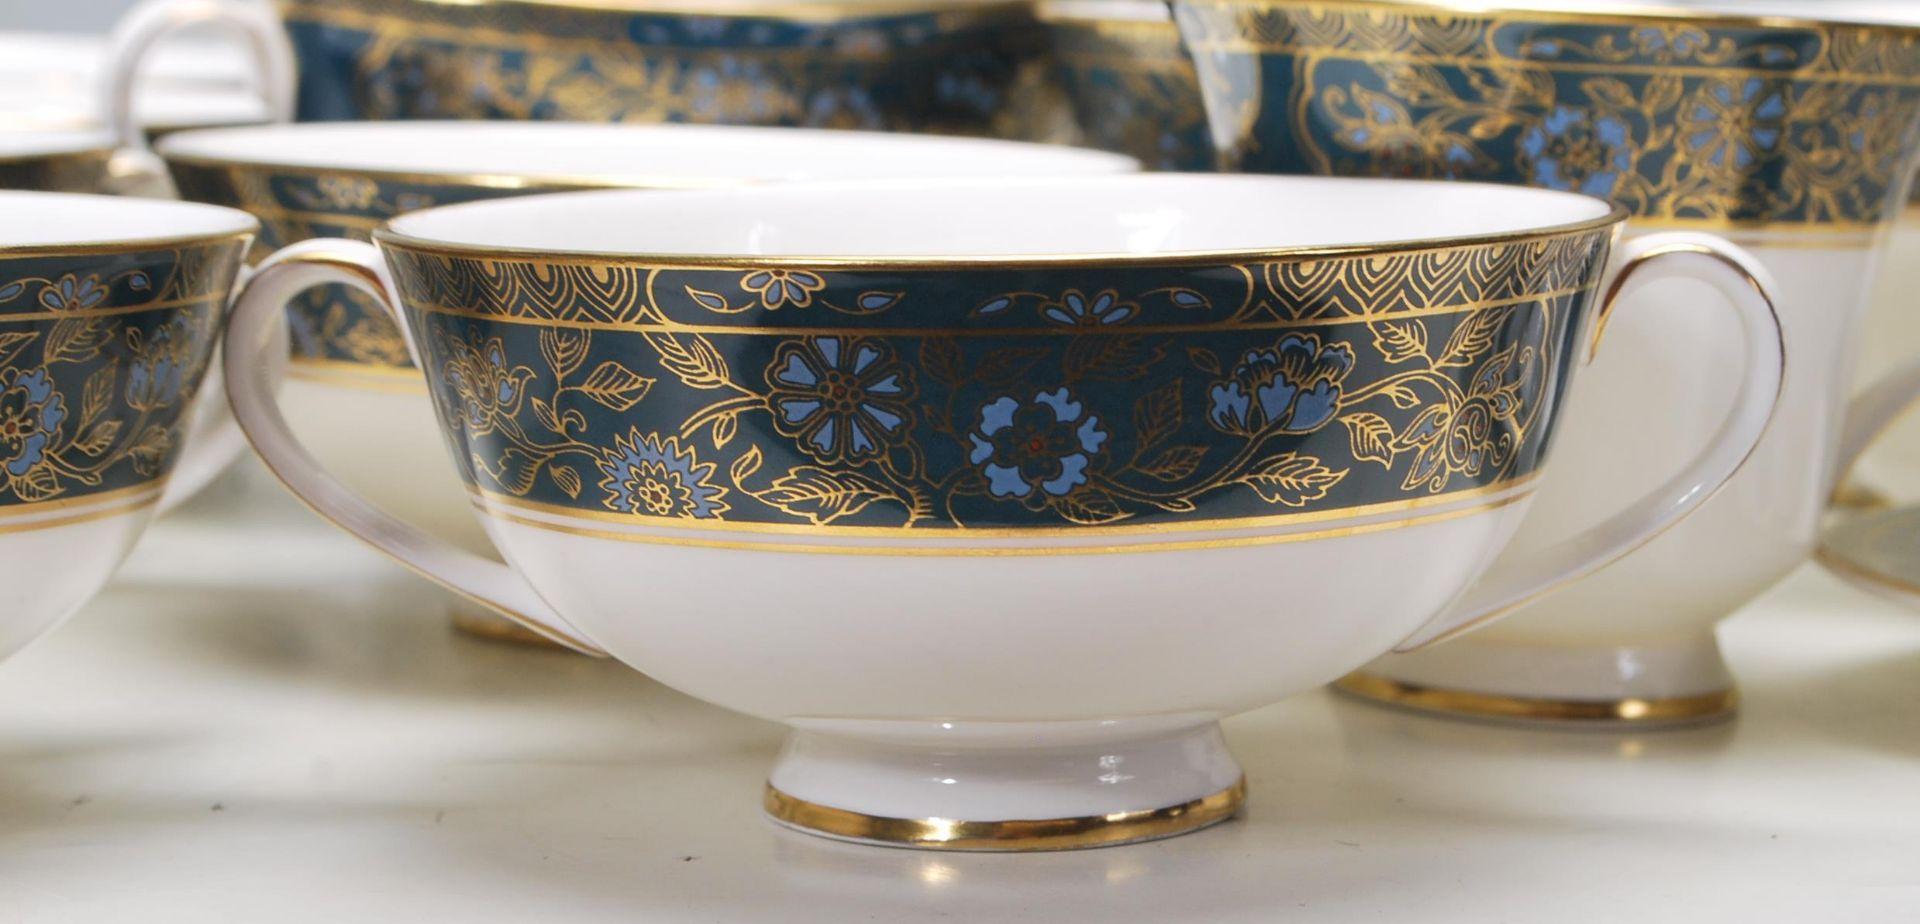 COLLECTION OF LATE 20TH CENTORUY ROYAL DOULTON FINE BONE CHINA DINNER SERVICE - Image 2 of 8